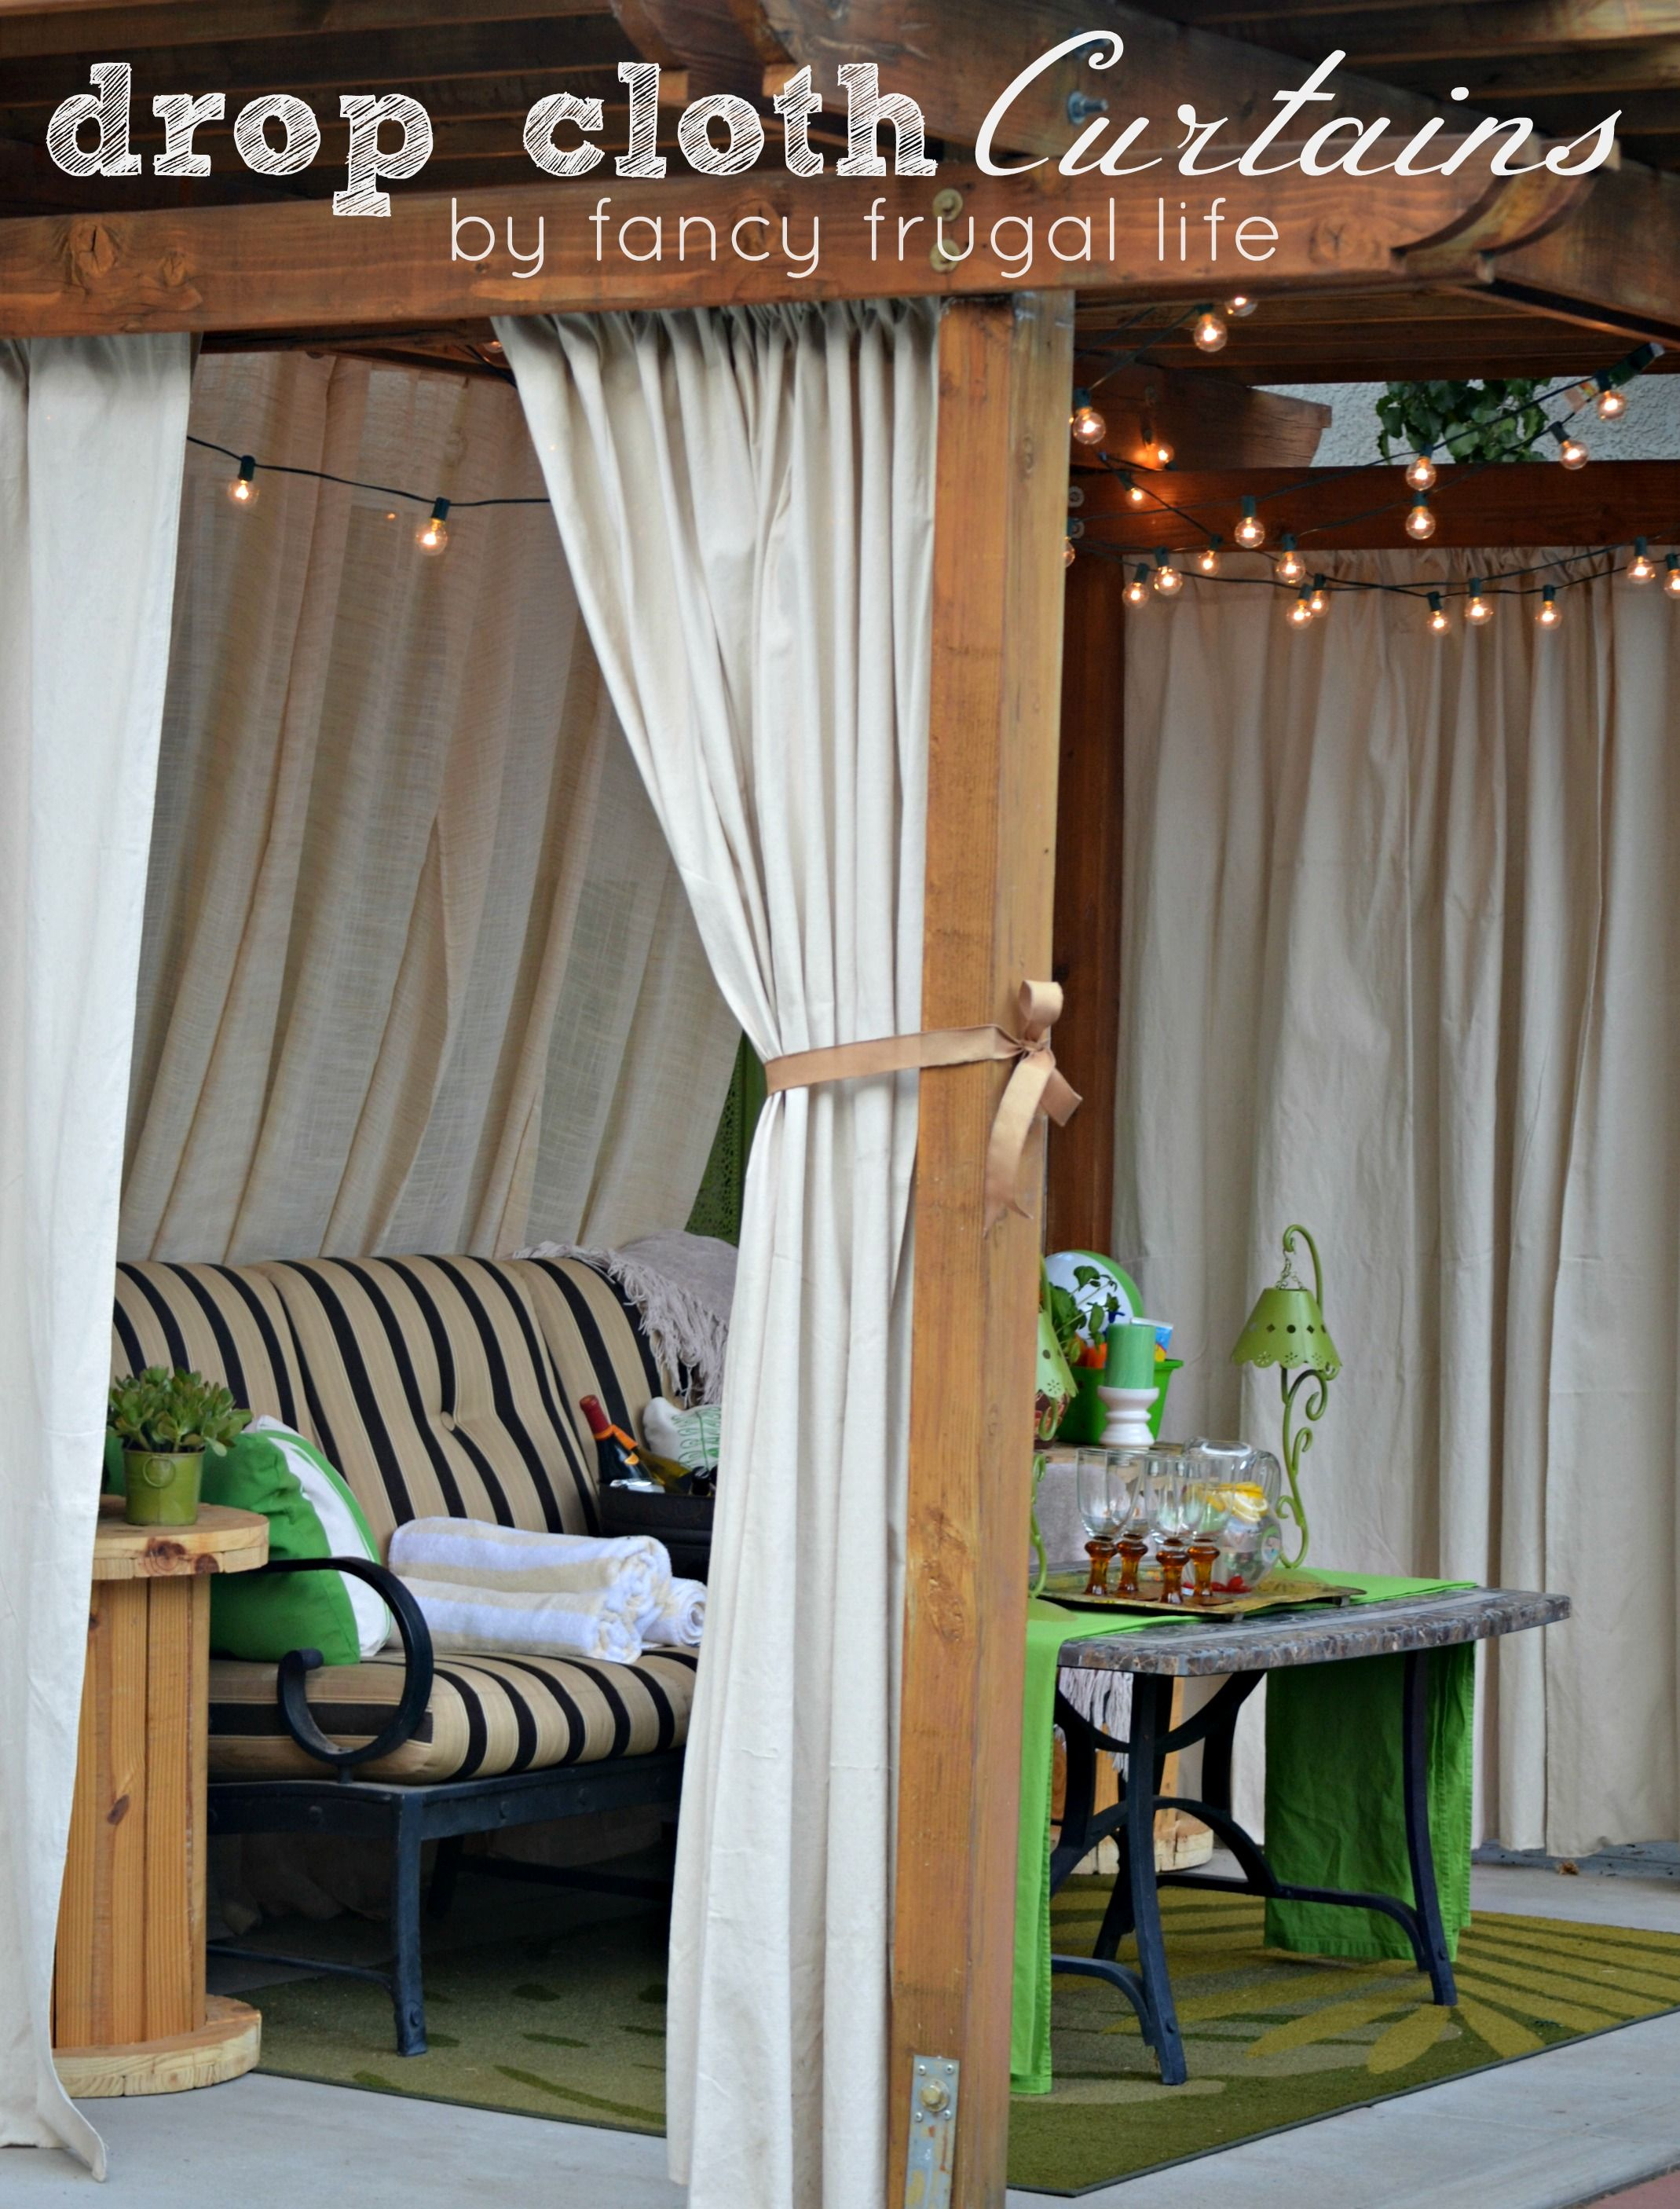 patio img of easy no outdoor upside chaos sew curtains